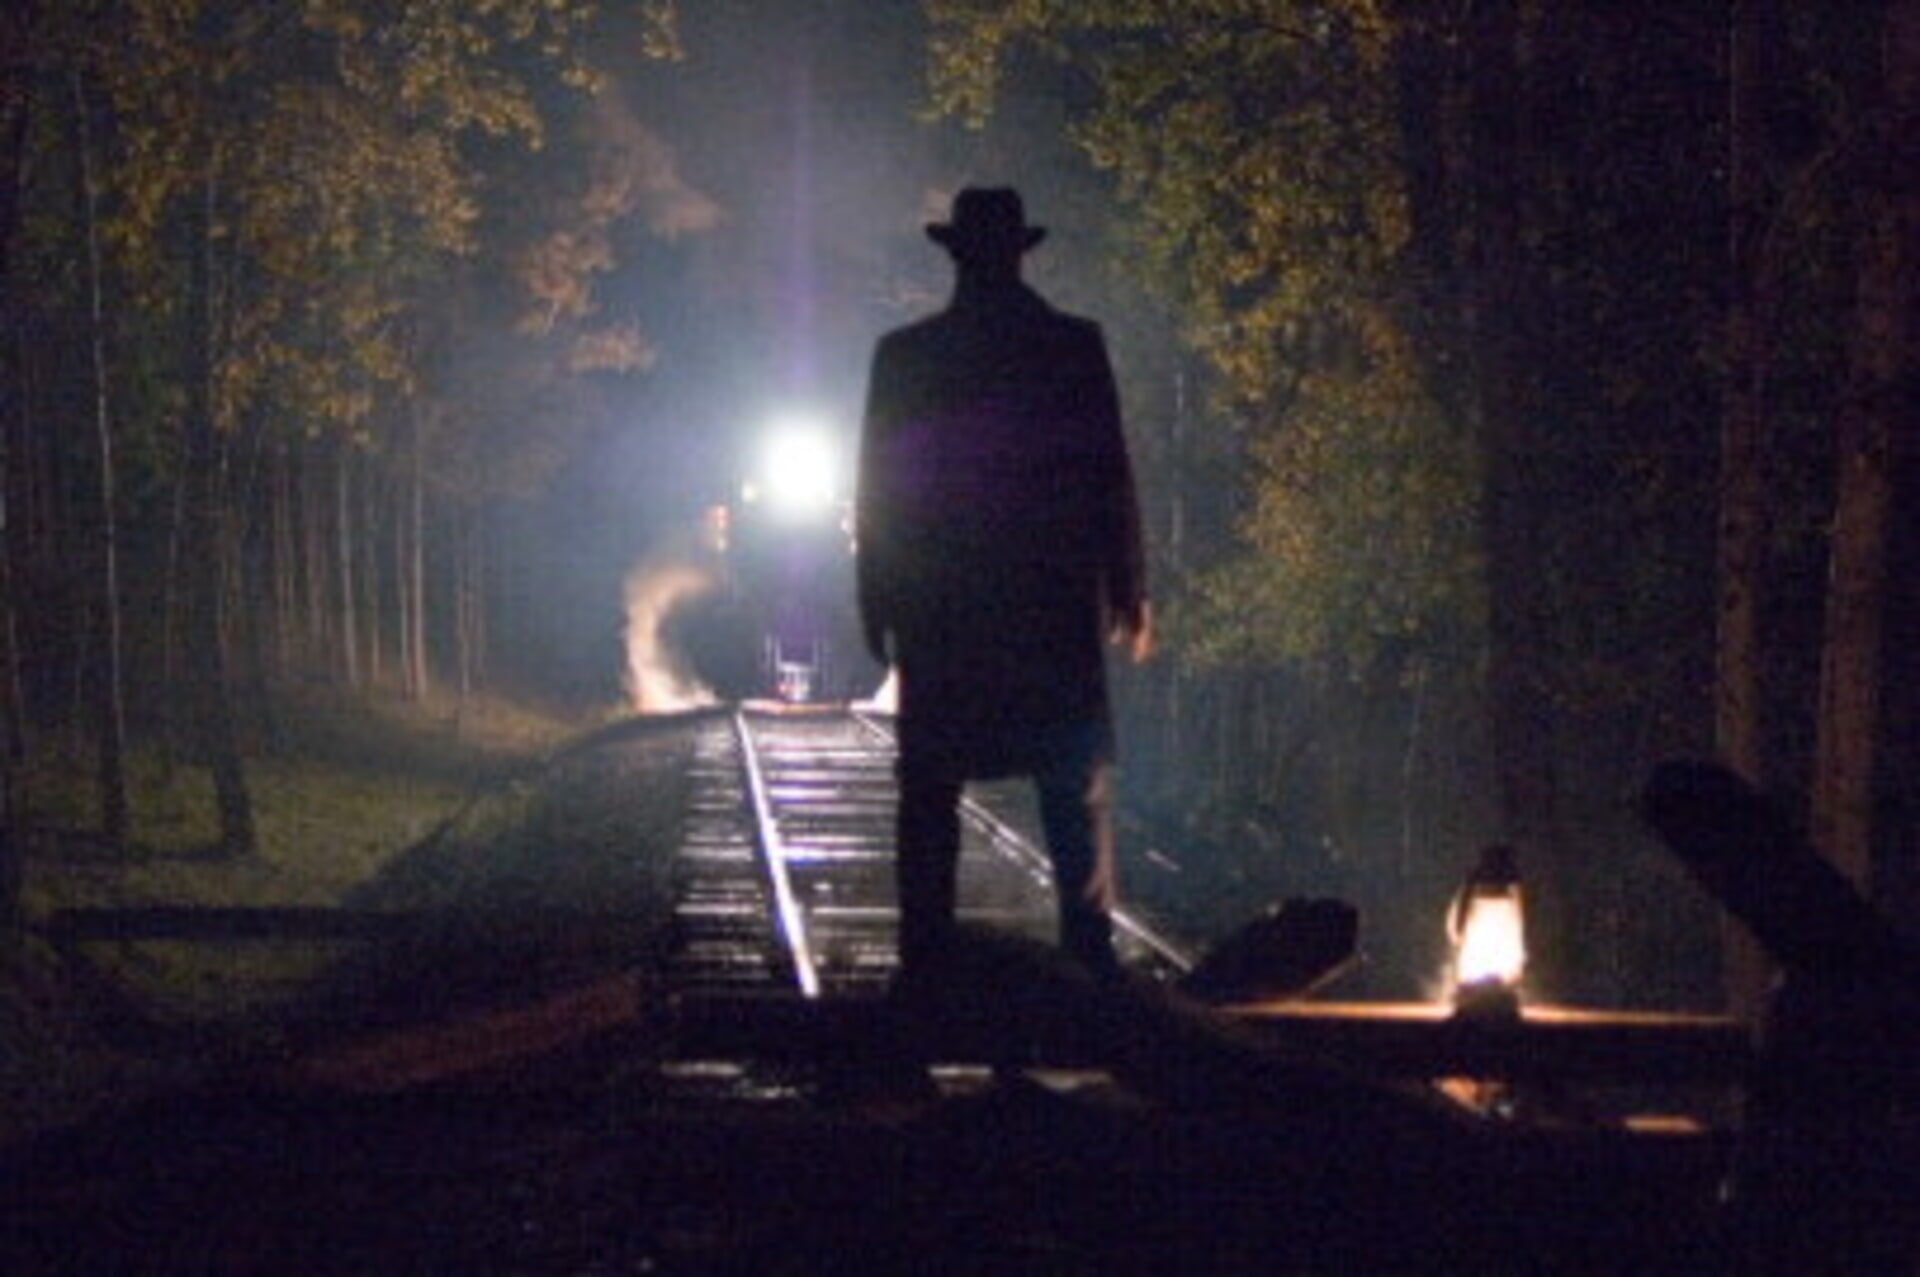 The Assassination of Jesse James by the Coward Robert Ford - Image 31